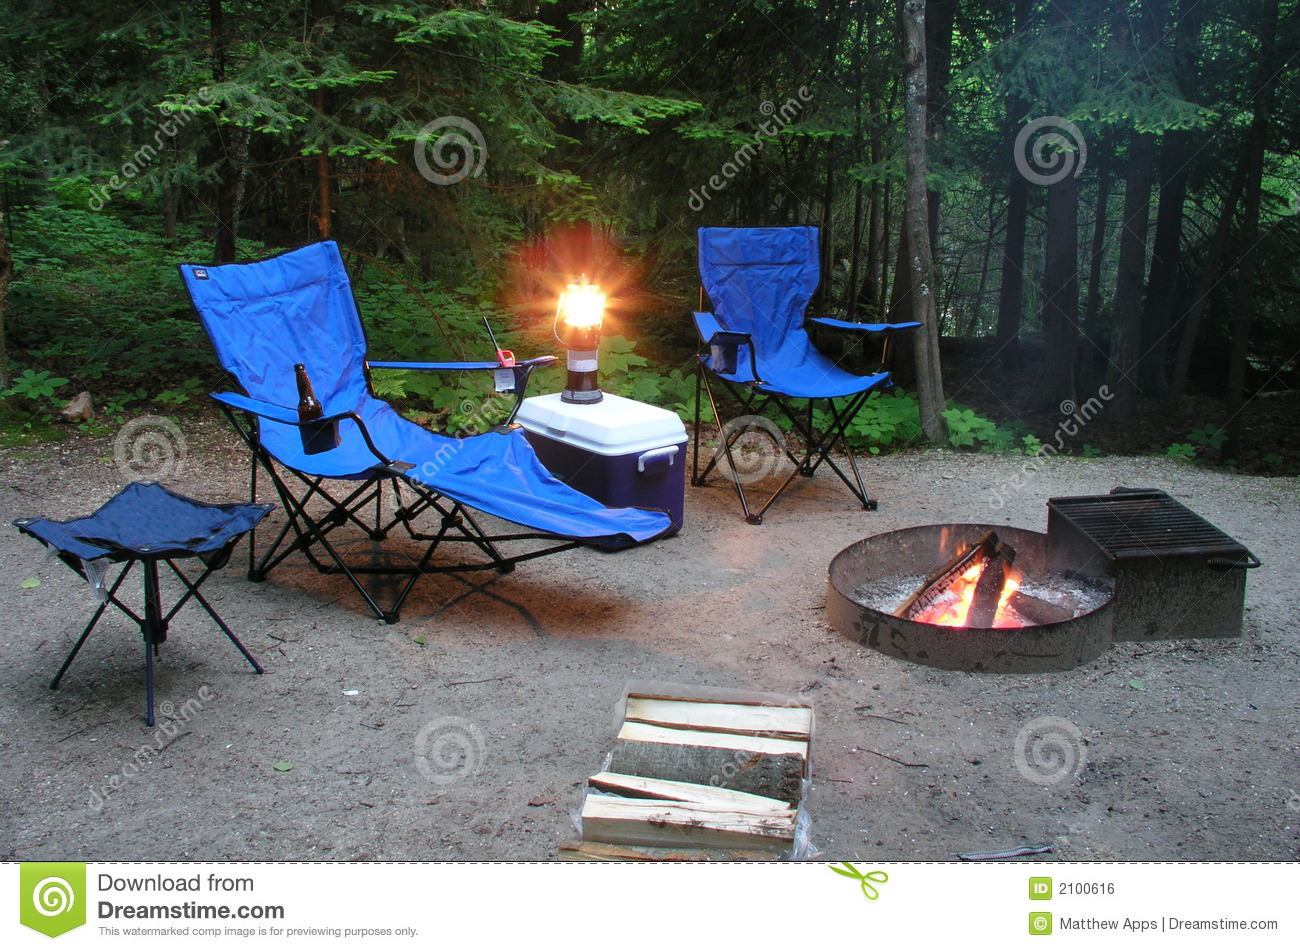 Superieur A Camping Scene With 2 Lawn Chairs, A Cooler, Table, Lantern And A Campfire  With Wood At A Campsite.